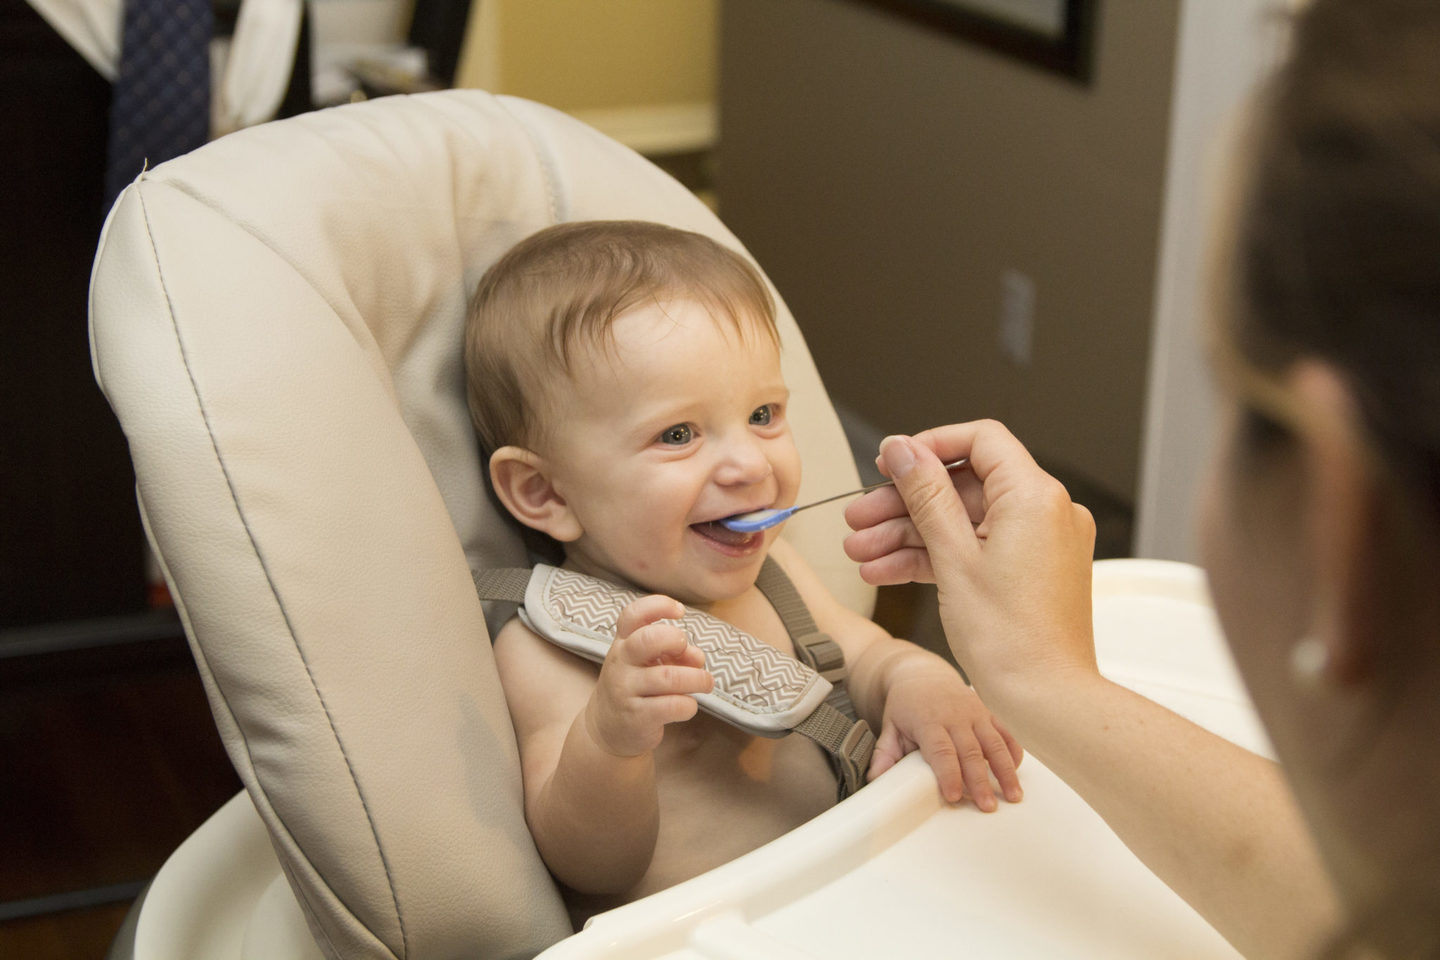 A baby being spoon-fed during weaning